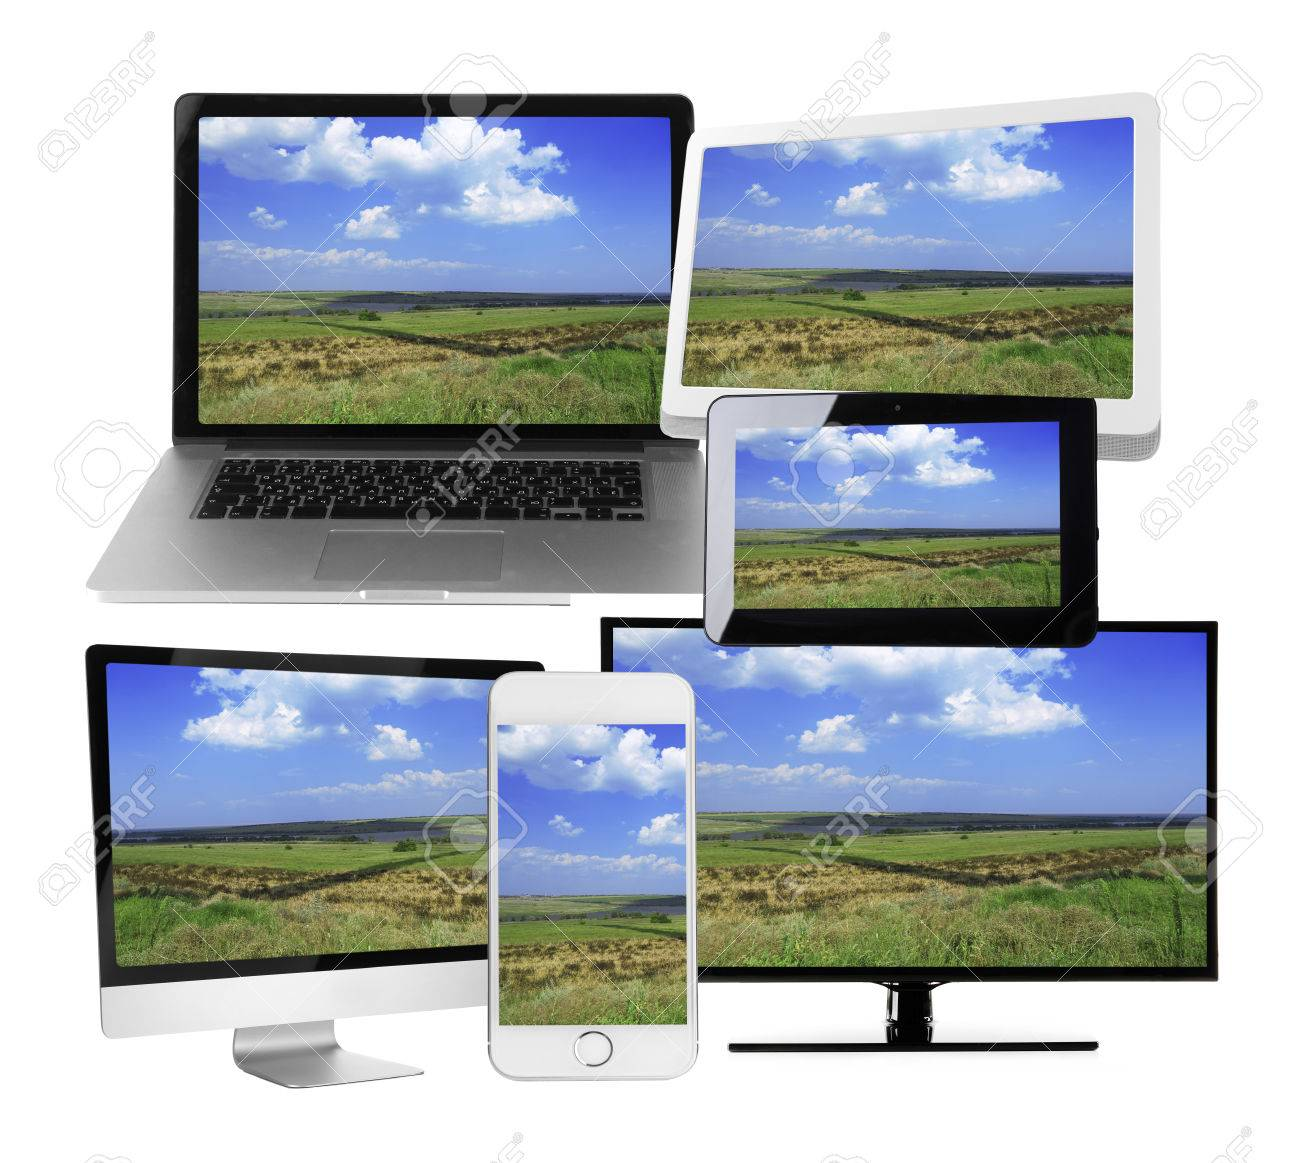 Monitors, laptop, tablet and phone with nature wallpaper on screens in collage isolated on